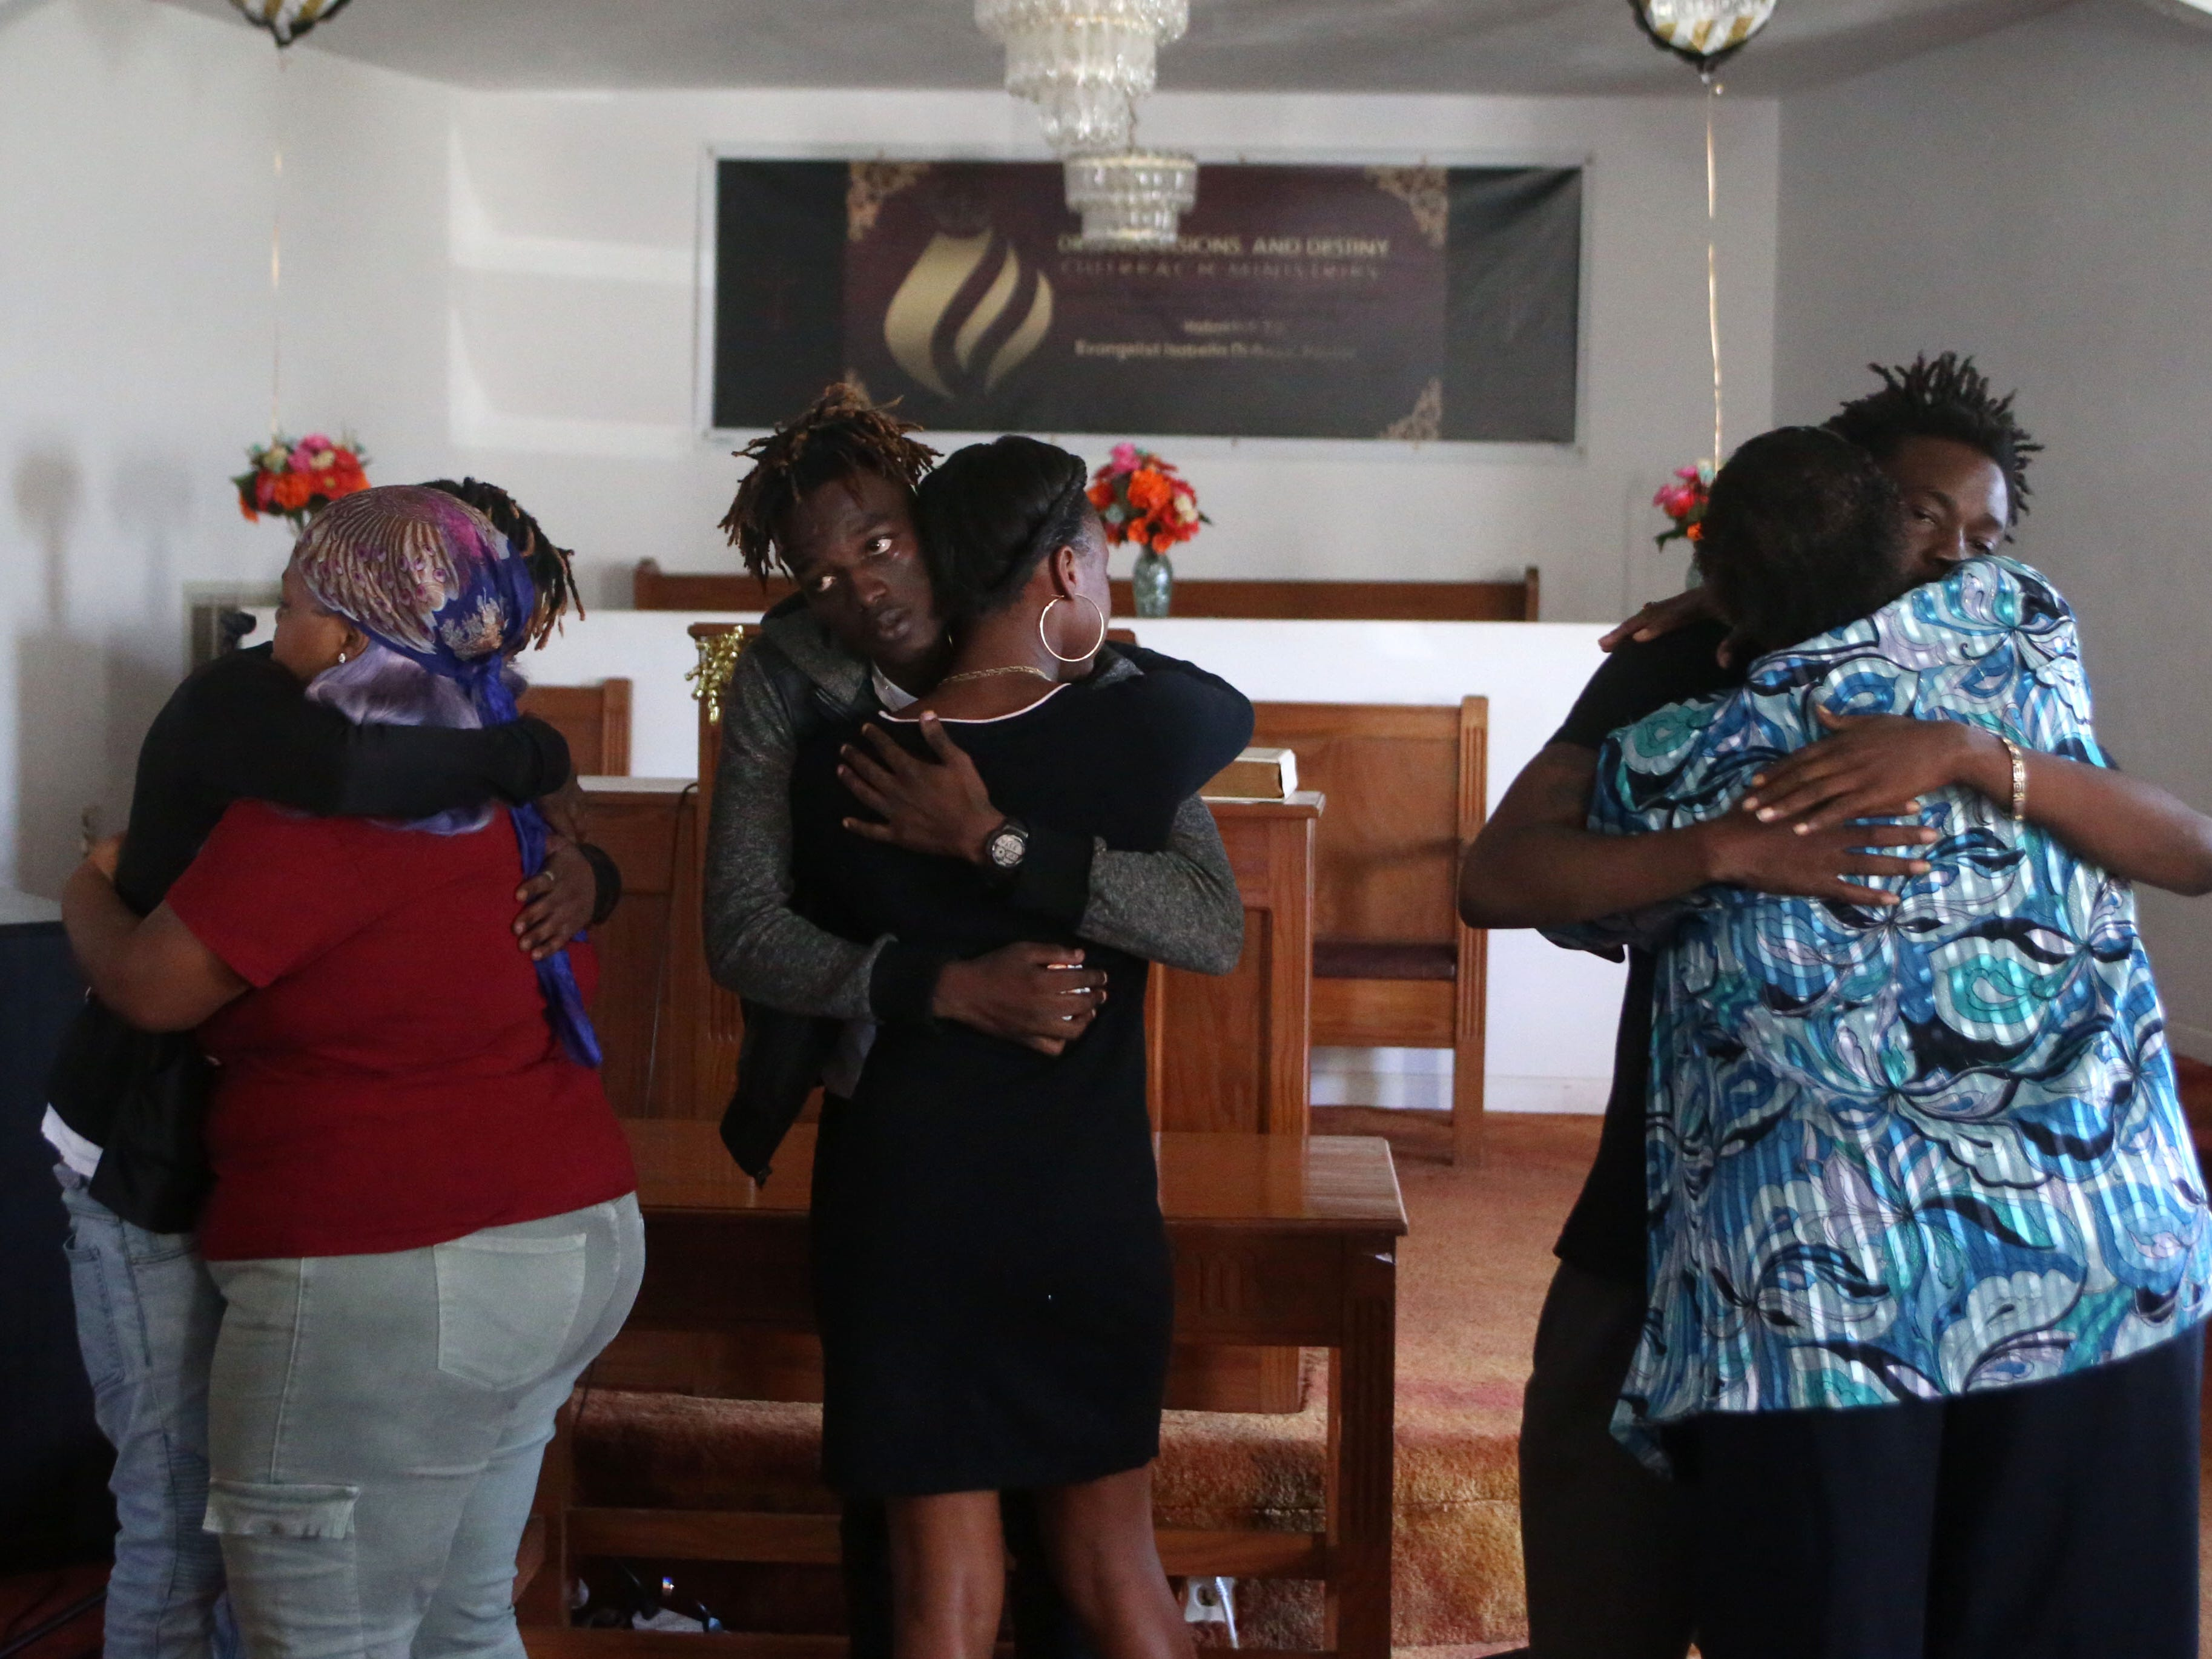 Family of Demashell Bass, a woman who could not receive medical attention and died during the hurricane from left to right, Tyran Grant, 21, son, Tyrone Grant, 23, son, and Lawrence Williams, 33, brother,  receive condolences from church members at the Dream, Vision, and Destiny (DVD) Ministry in Gretna, Fla., on Sunday Oct. 14, 2018, after Hurricane Michael hits the Florida panhandle.